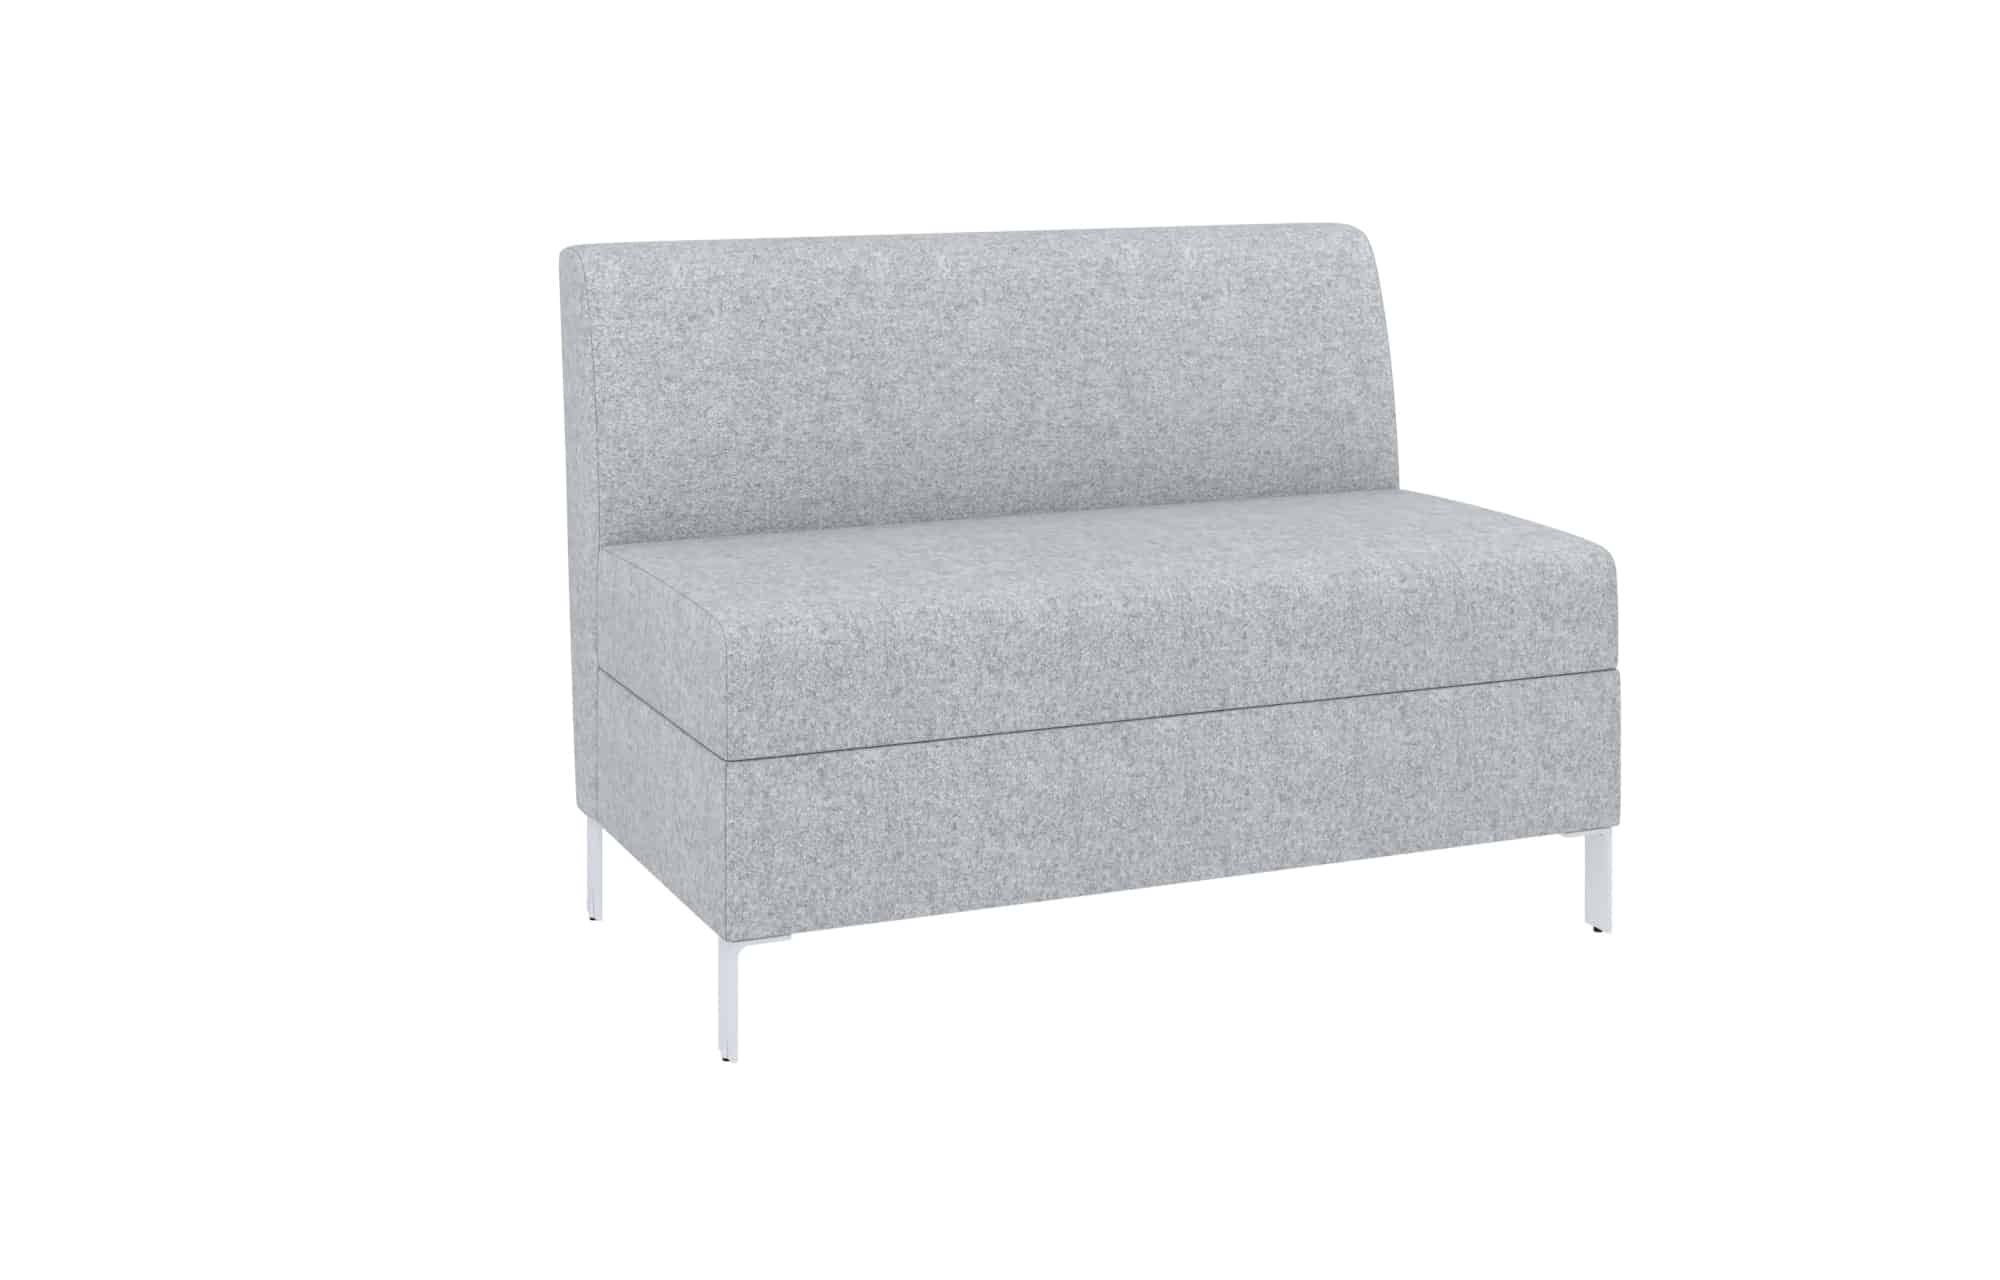 Hickory Contract Gemini Modular Lounge GE-220